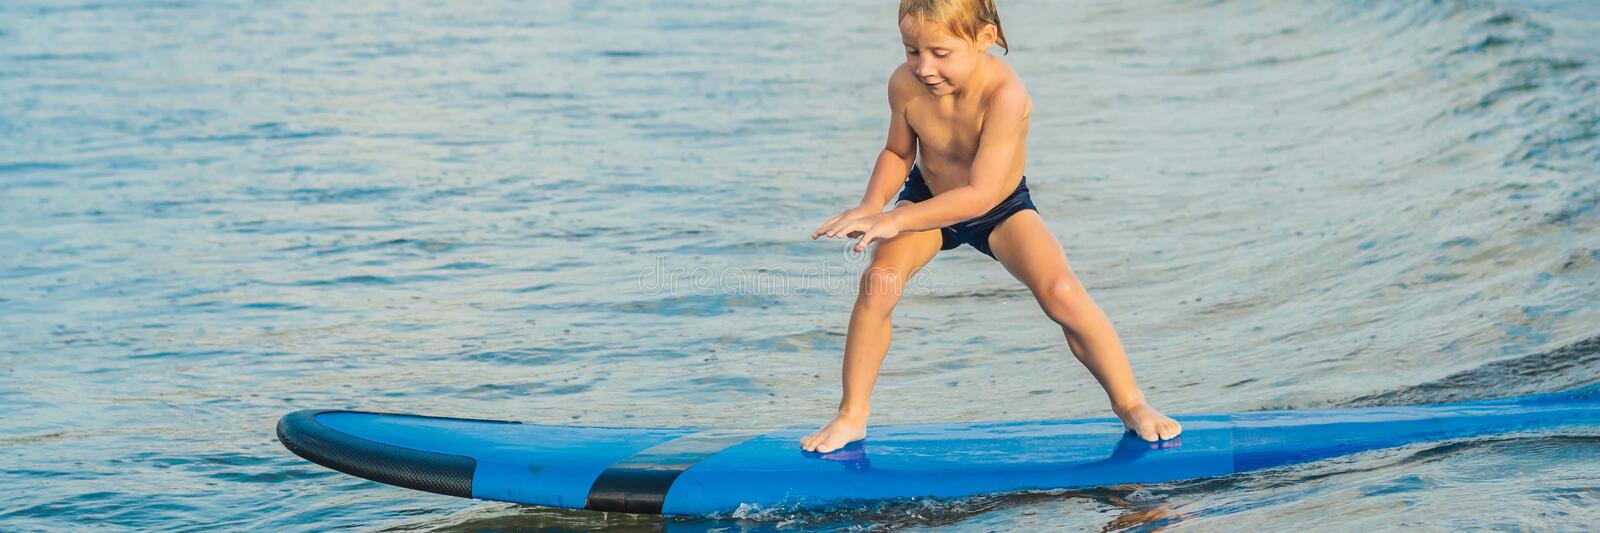 Little boy surfing on tropical beach. Child on surf board on ocean wave. Active water sports for kids. Kid swimming with. Surf. Surfing lesson for kids. BANNER royalty free stock photos